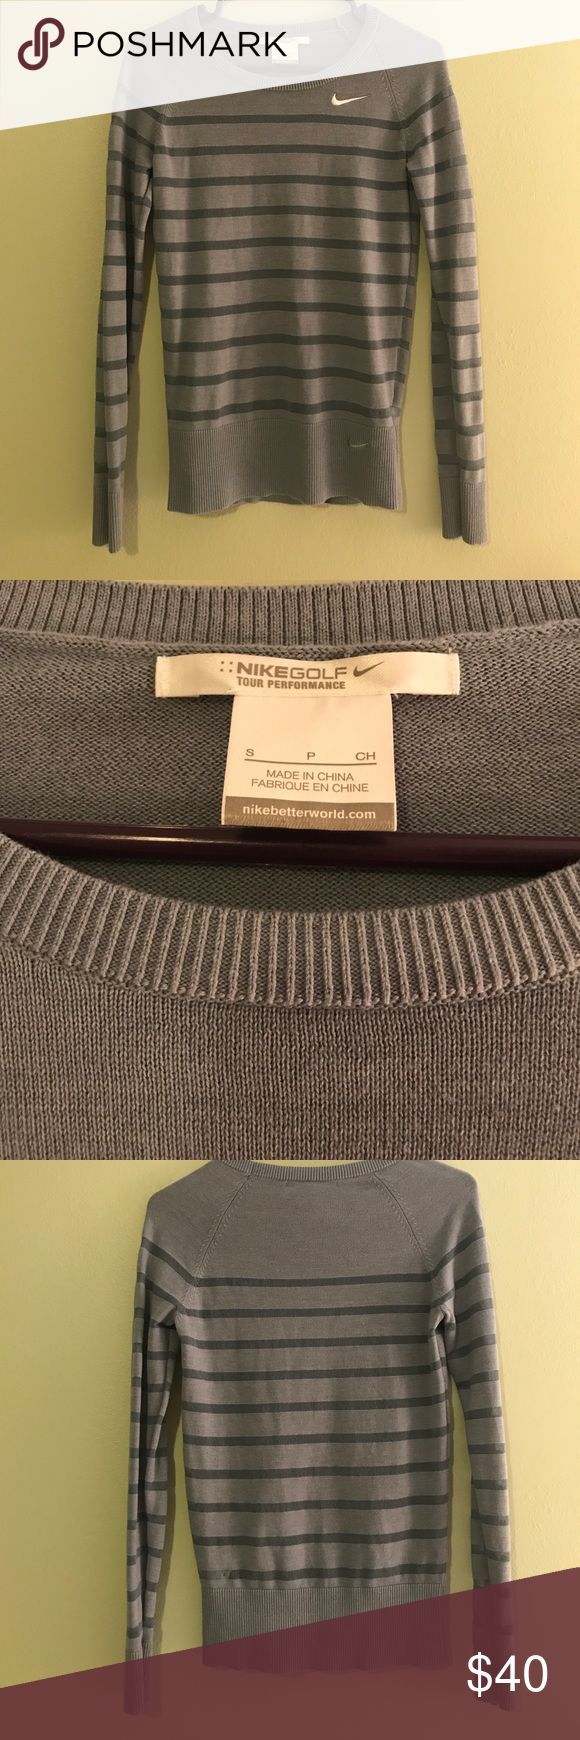 Nike golf sweater ⛳️ Lightweight grey Nike women's golf sweater. See through stripes as seen in pics. Great condition! Nike Sweaters